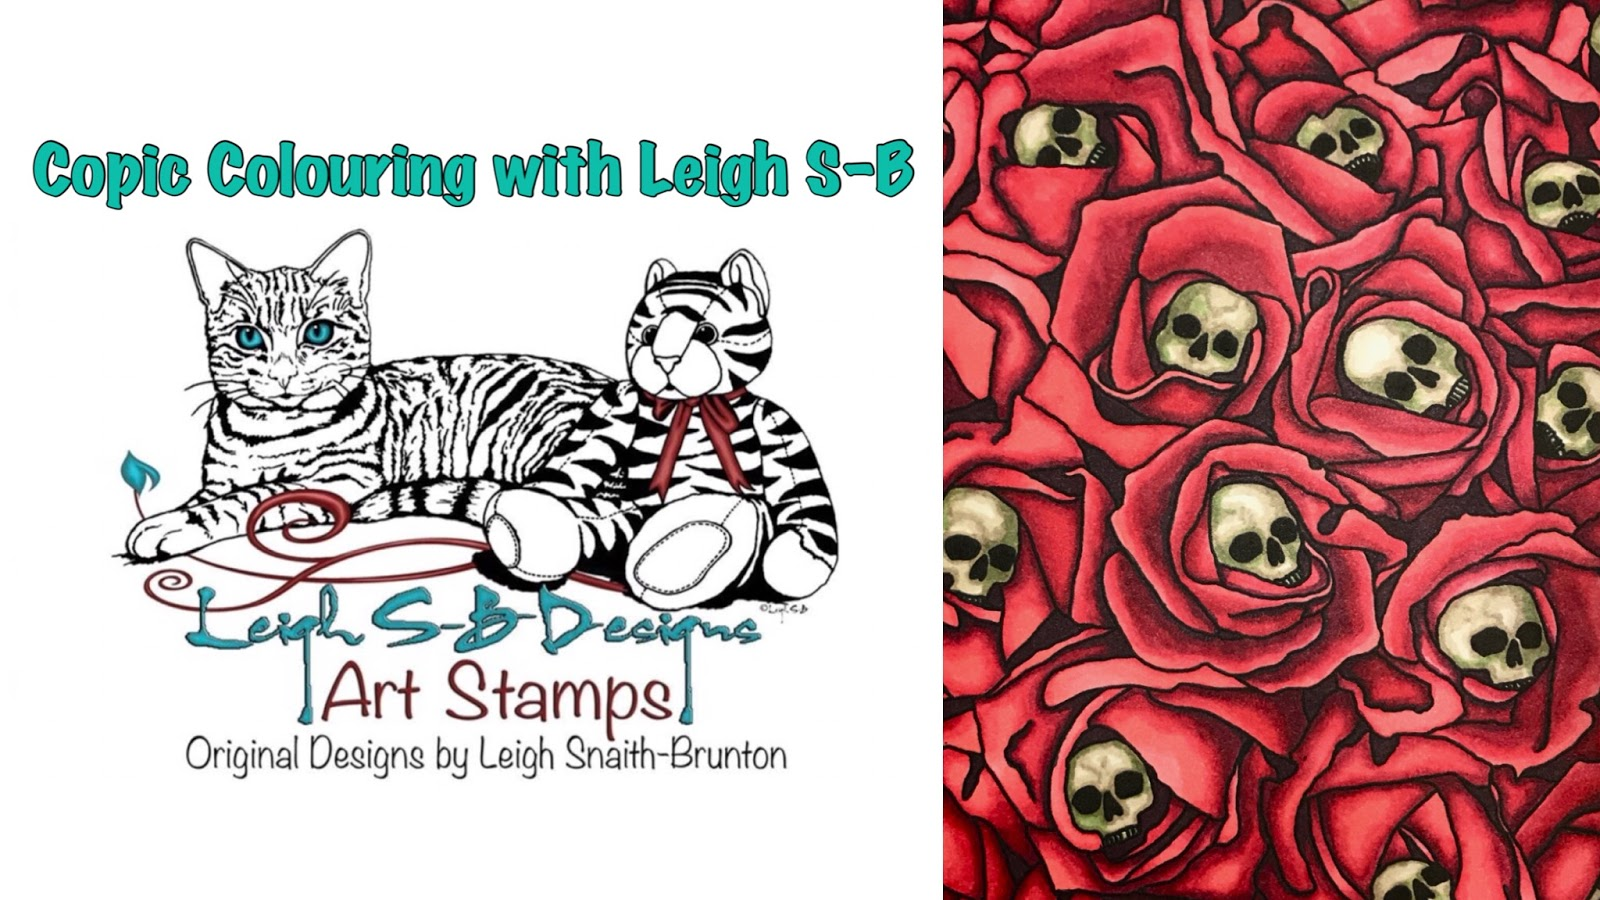 LeighSBDesigns: Tutorial Tuesdays: Red Roses Copic Colouring with Leigh!